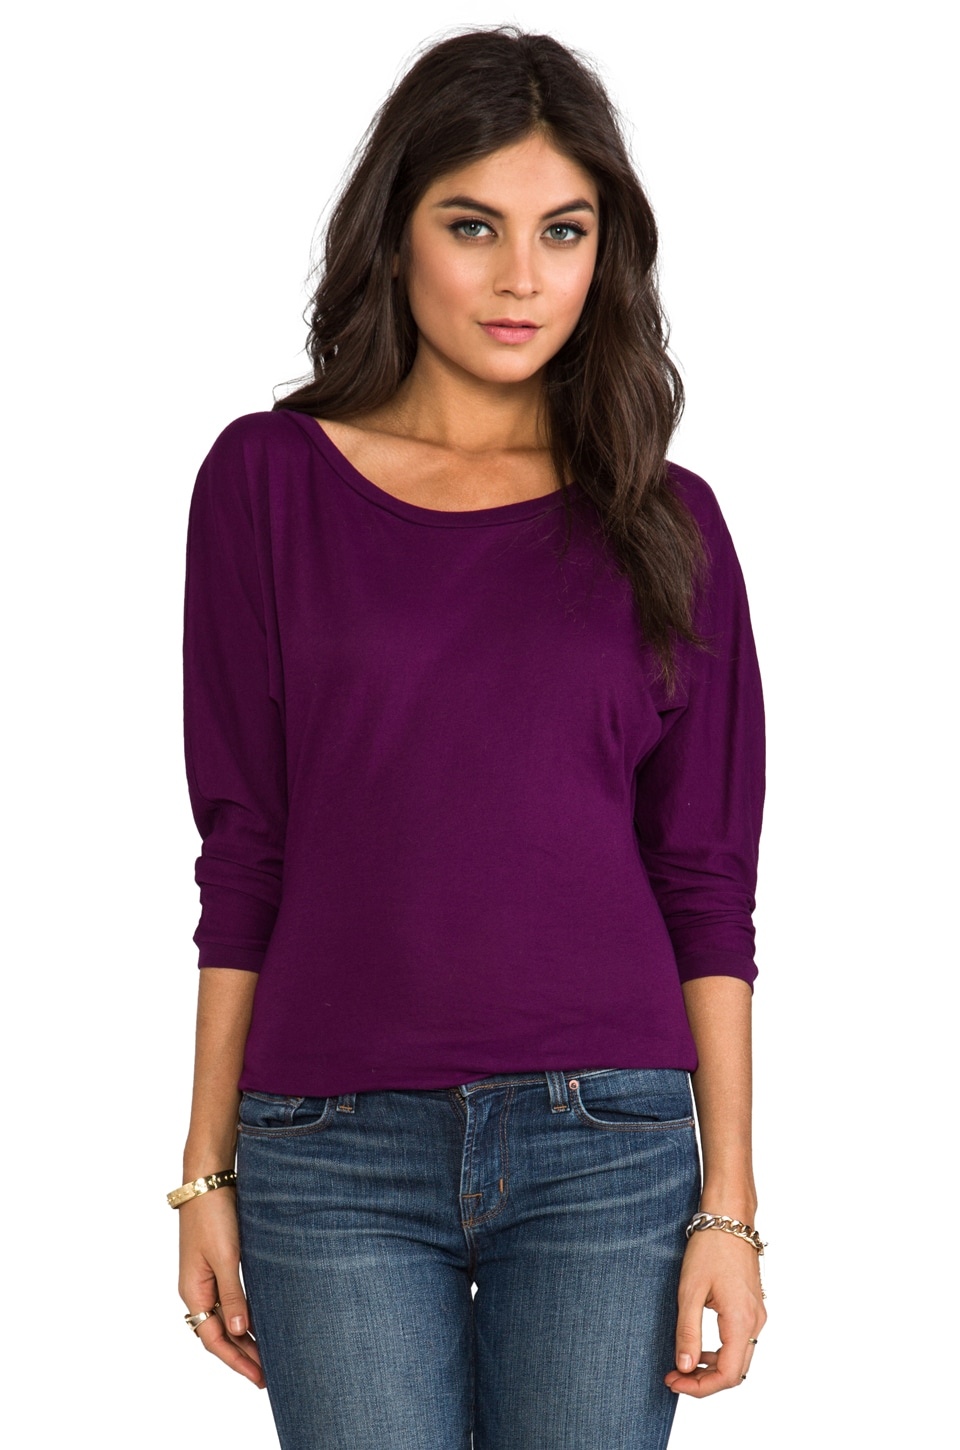 Bobi Light Weight Jersey Boatneck Top in Imperial